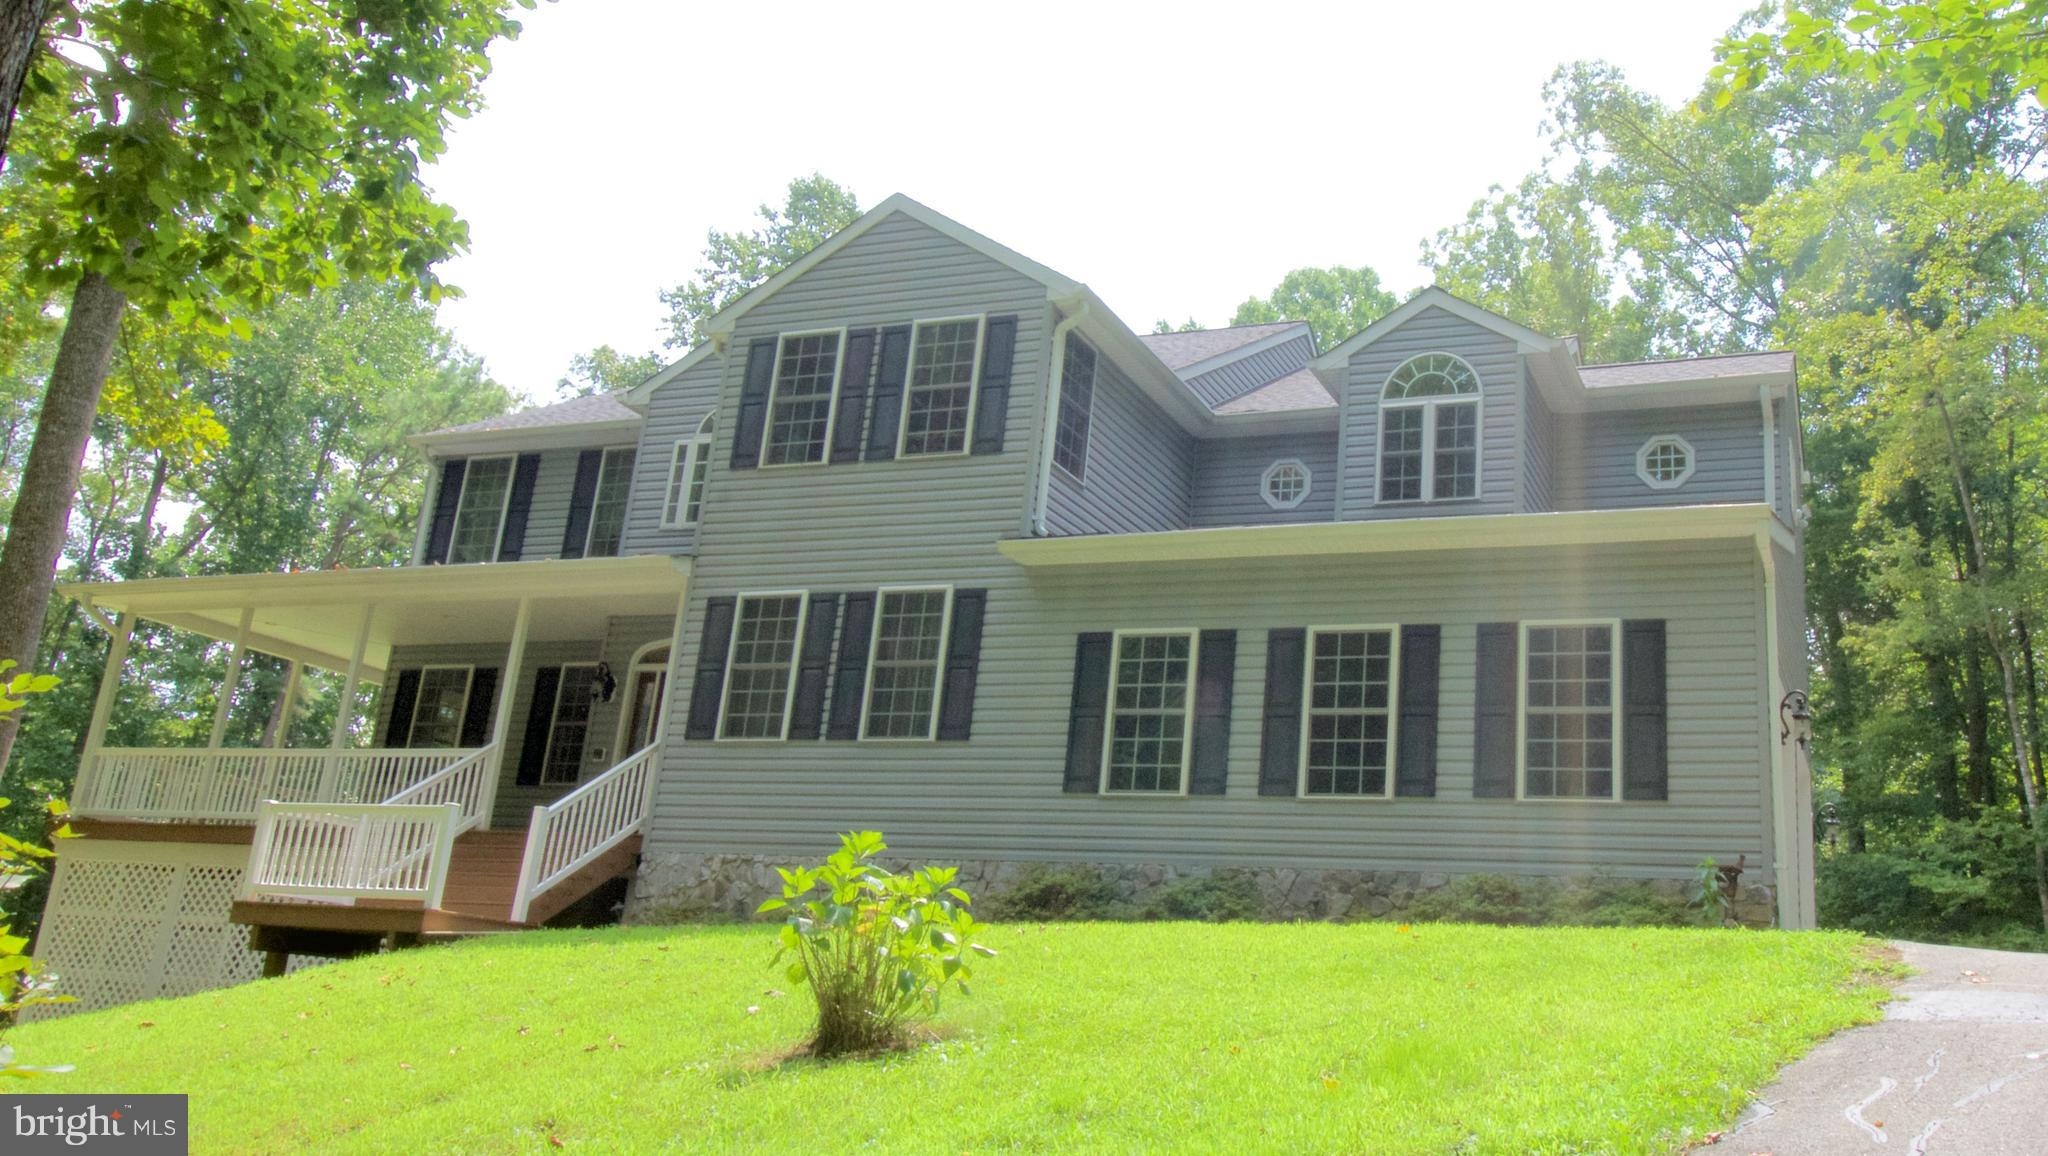 Serenity awaits you in your new 23.32 acre Private Residence! This gorgeous home boasts a Gourmet Kitchen, Hardwood Floors, Oversized Rooms, 2 Master Bedrooms w/ the Main Master Bedroom having a Fireplace, Sitting Room, Tray Ceilings, and an enormous  Master Bathroom w/ a Jetted Soaking Tub that you will love! No HOA! This driveway is already designed to house your RV's, Boats, and other Vehicles.